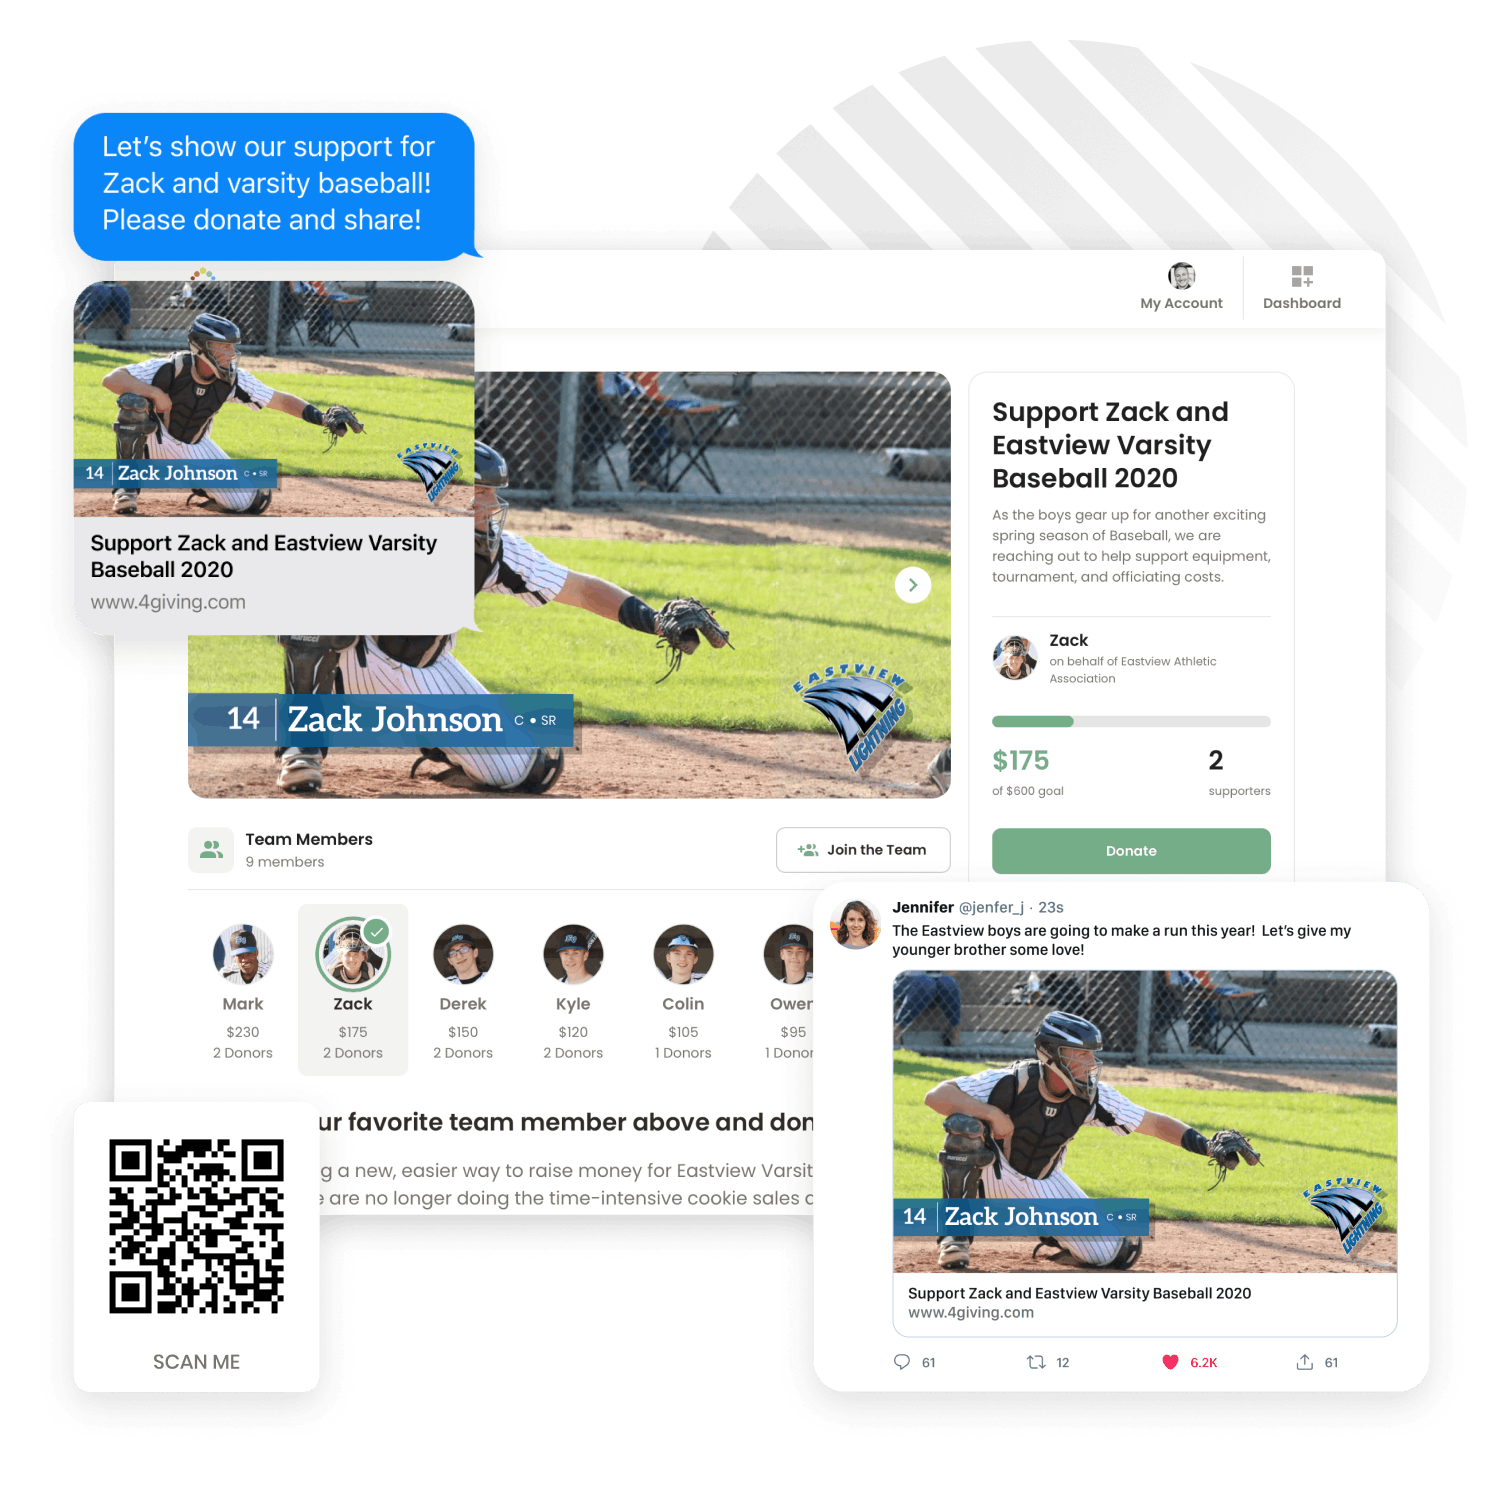 4giving fundraising sports montage with donation page, QR code, social media post and commenting